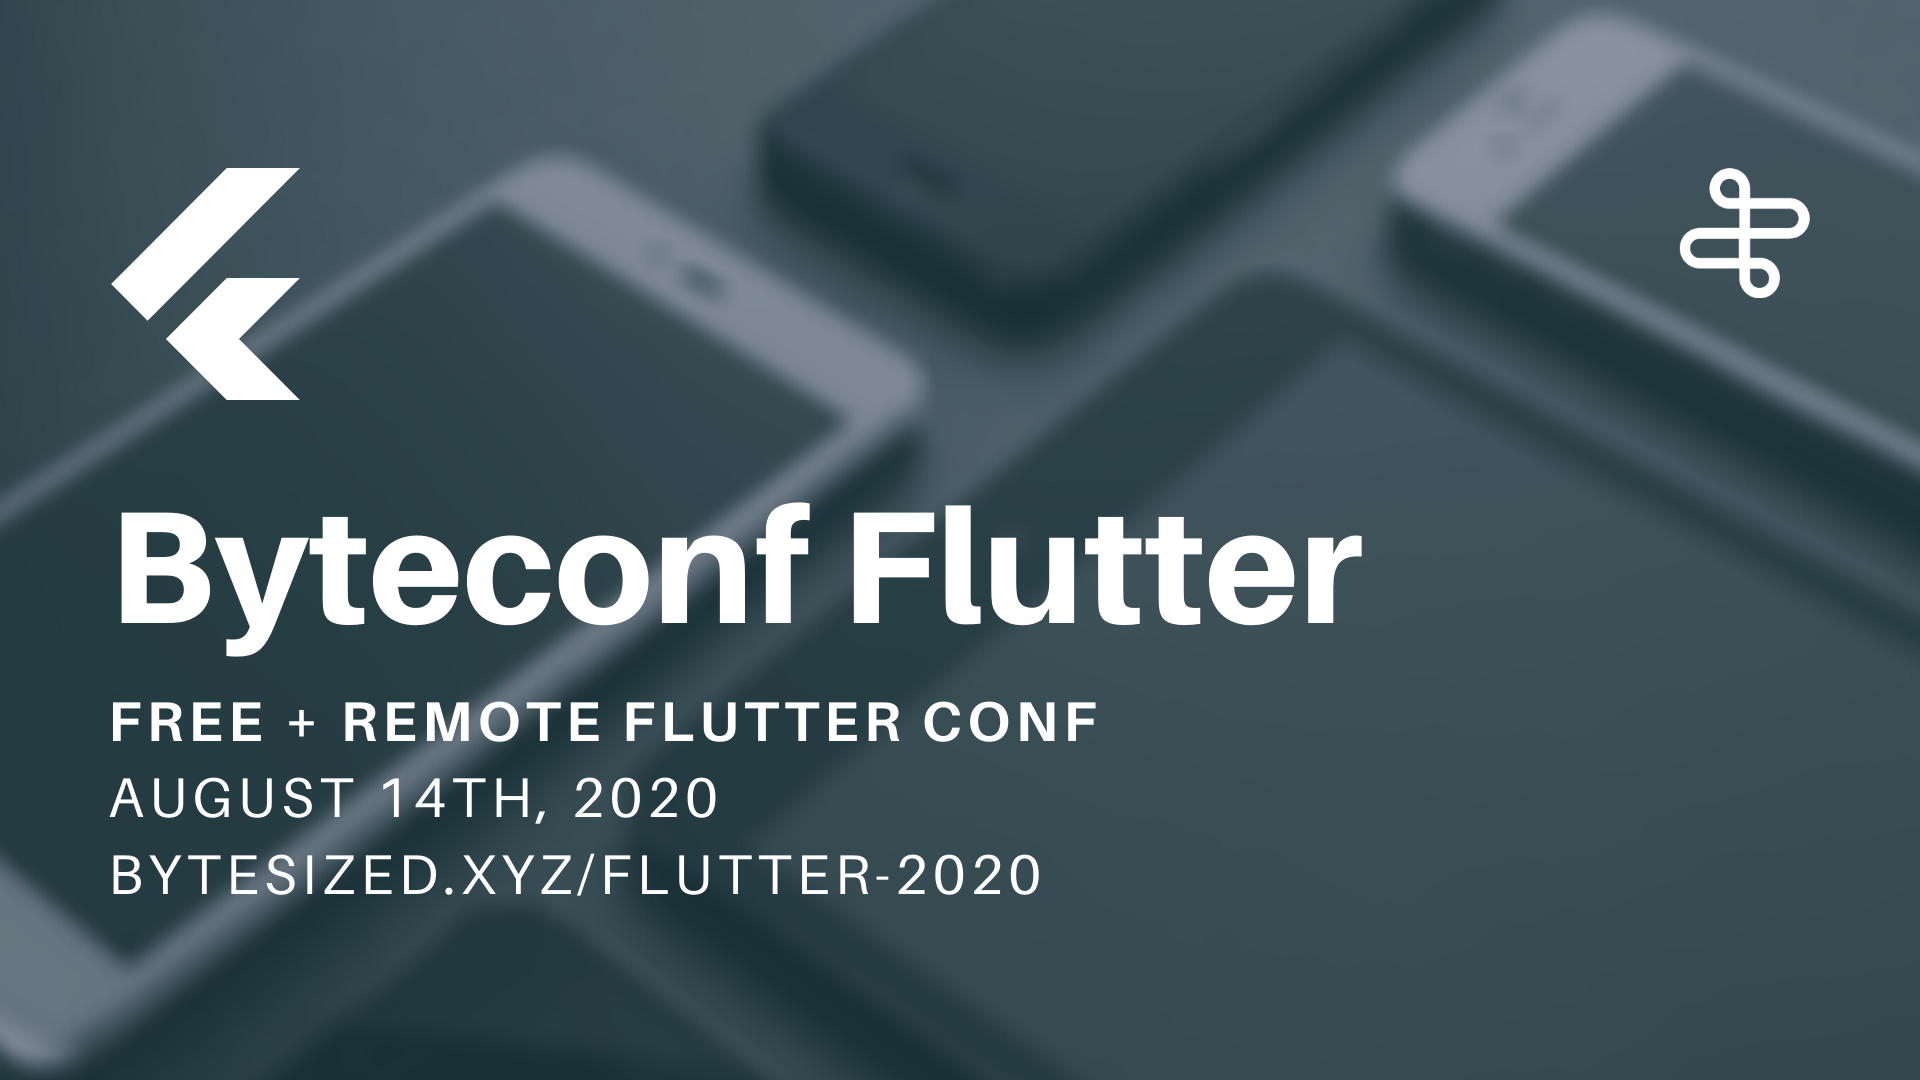 Announcing Byteconf Flutter: a free, fully remote Flutter conference